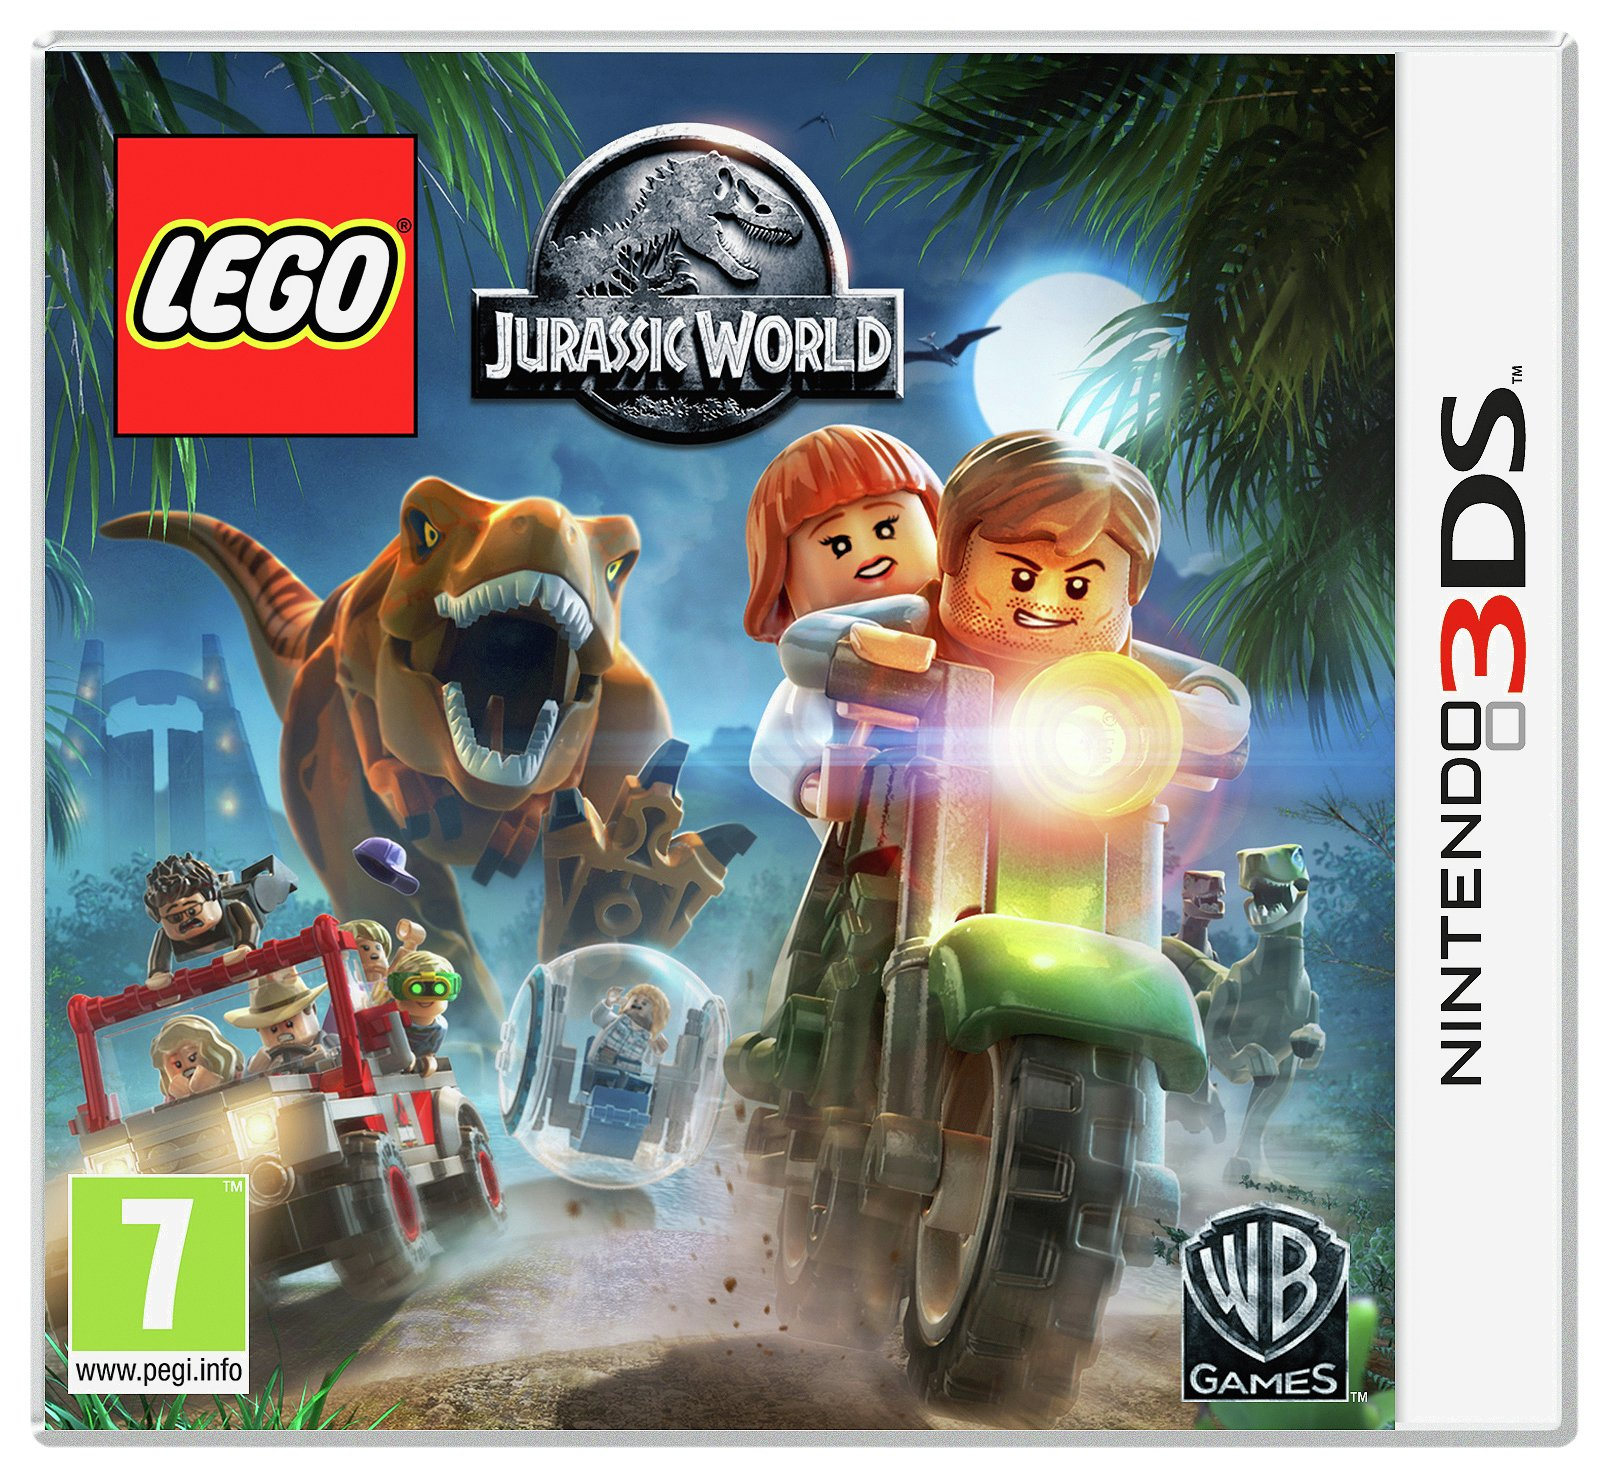 LEGO - Jurassic World - 3DS Game from LEGO